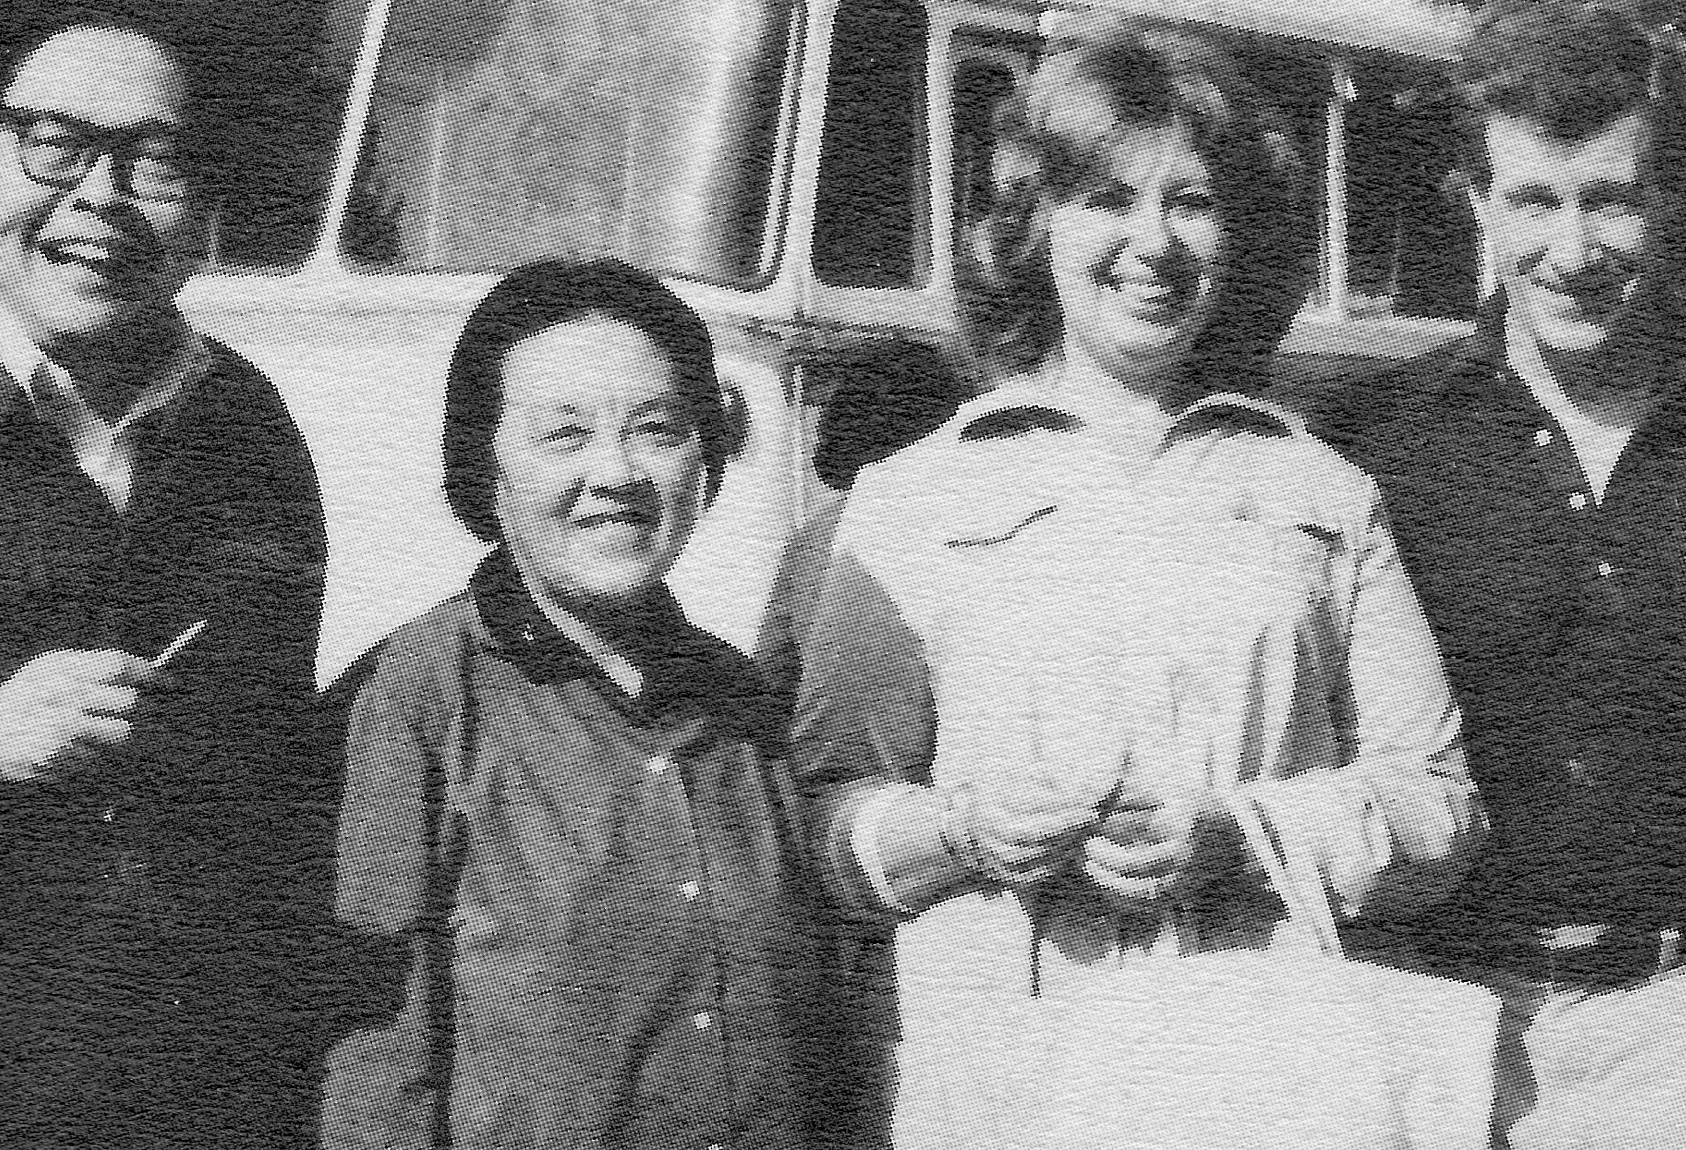 Beverly Sills and Schuyler Chapin at the Central Conservatory of Music with Yu Yixuan, head of the vocal department, vice director Jiang Ying, and professor Shen Xiang